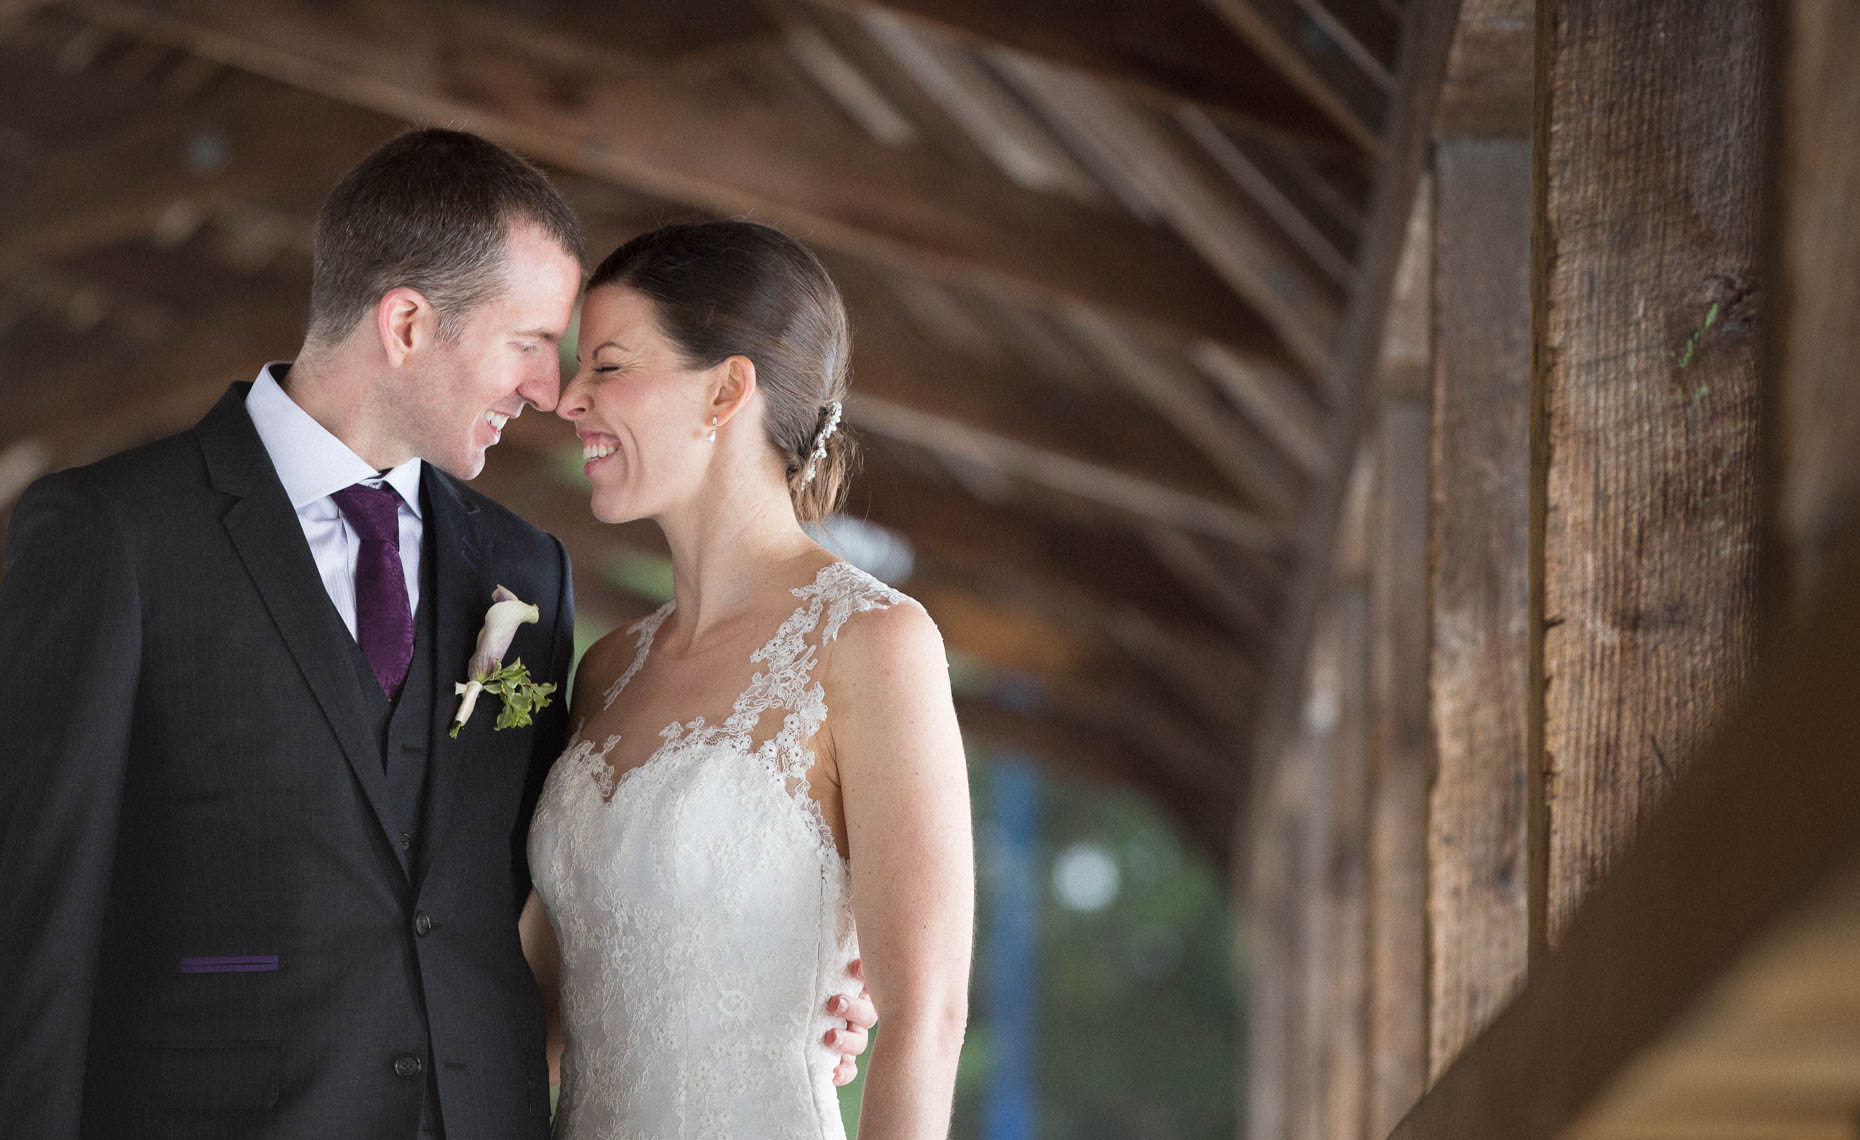 Intimate moment between bride and groom in this whistler wedding portrait